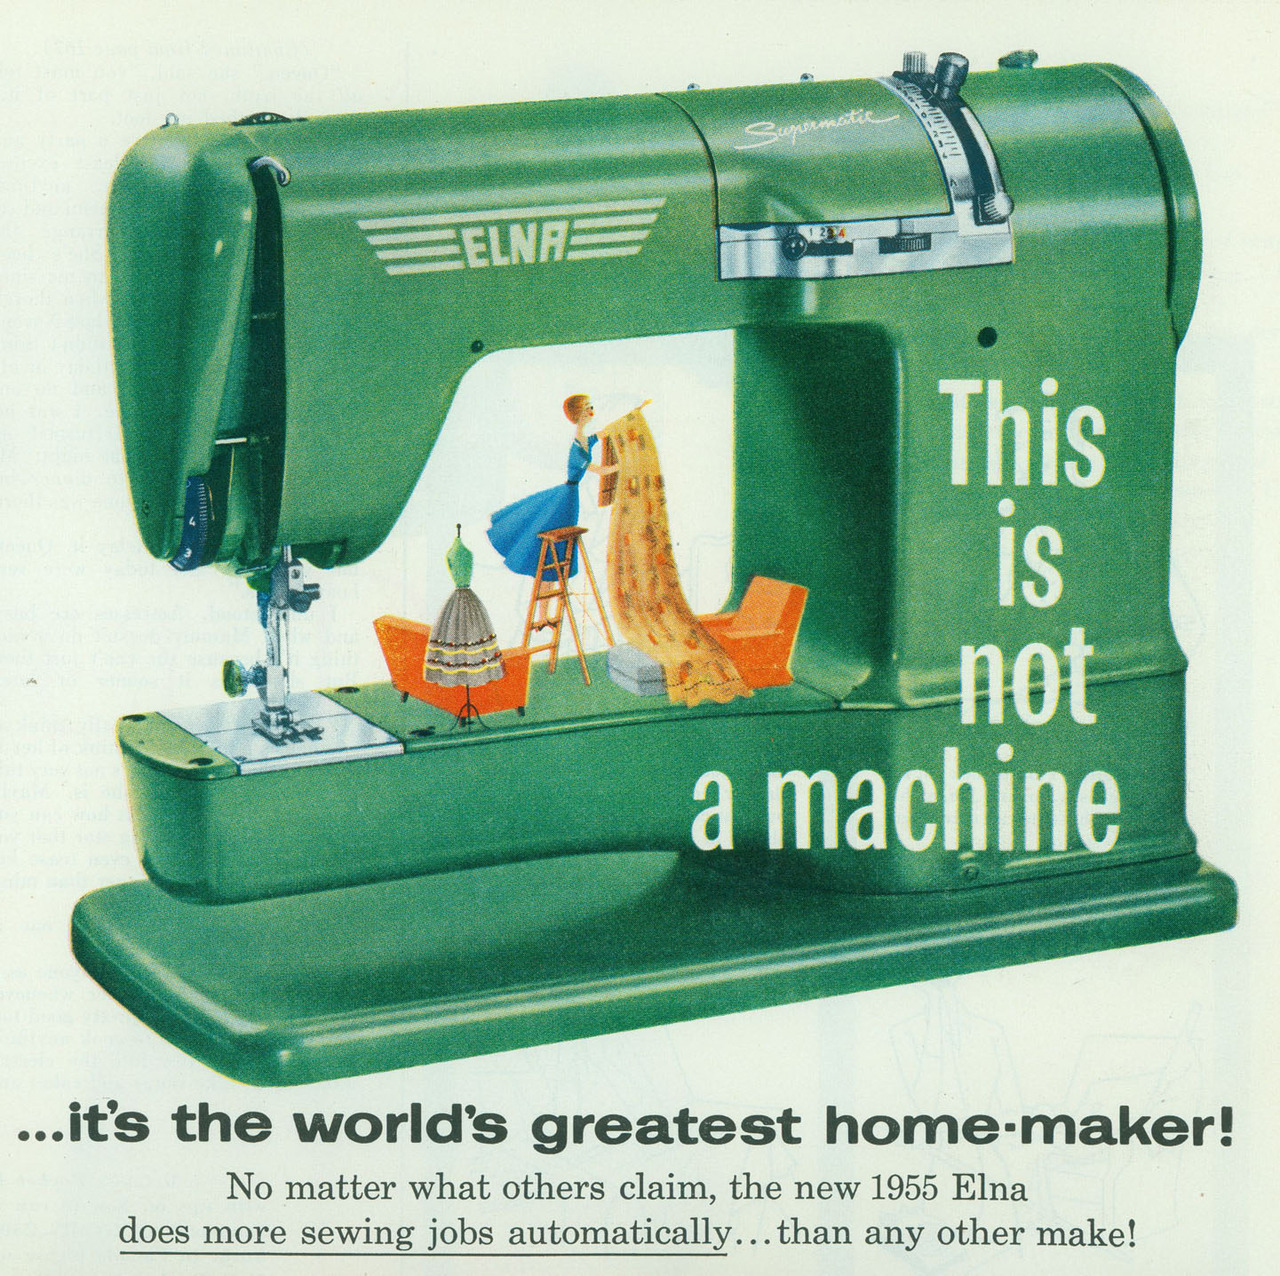 The world's greatesthome-maker